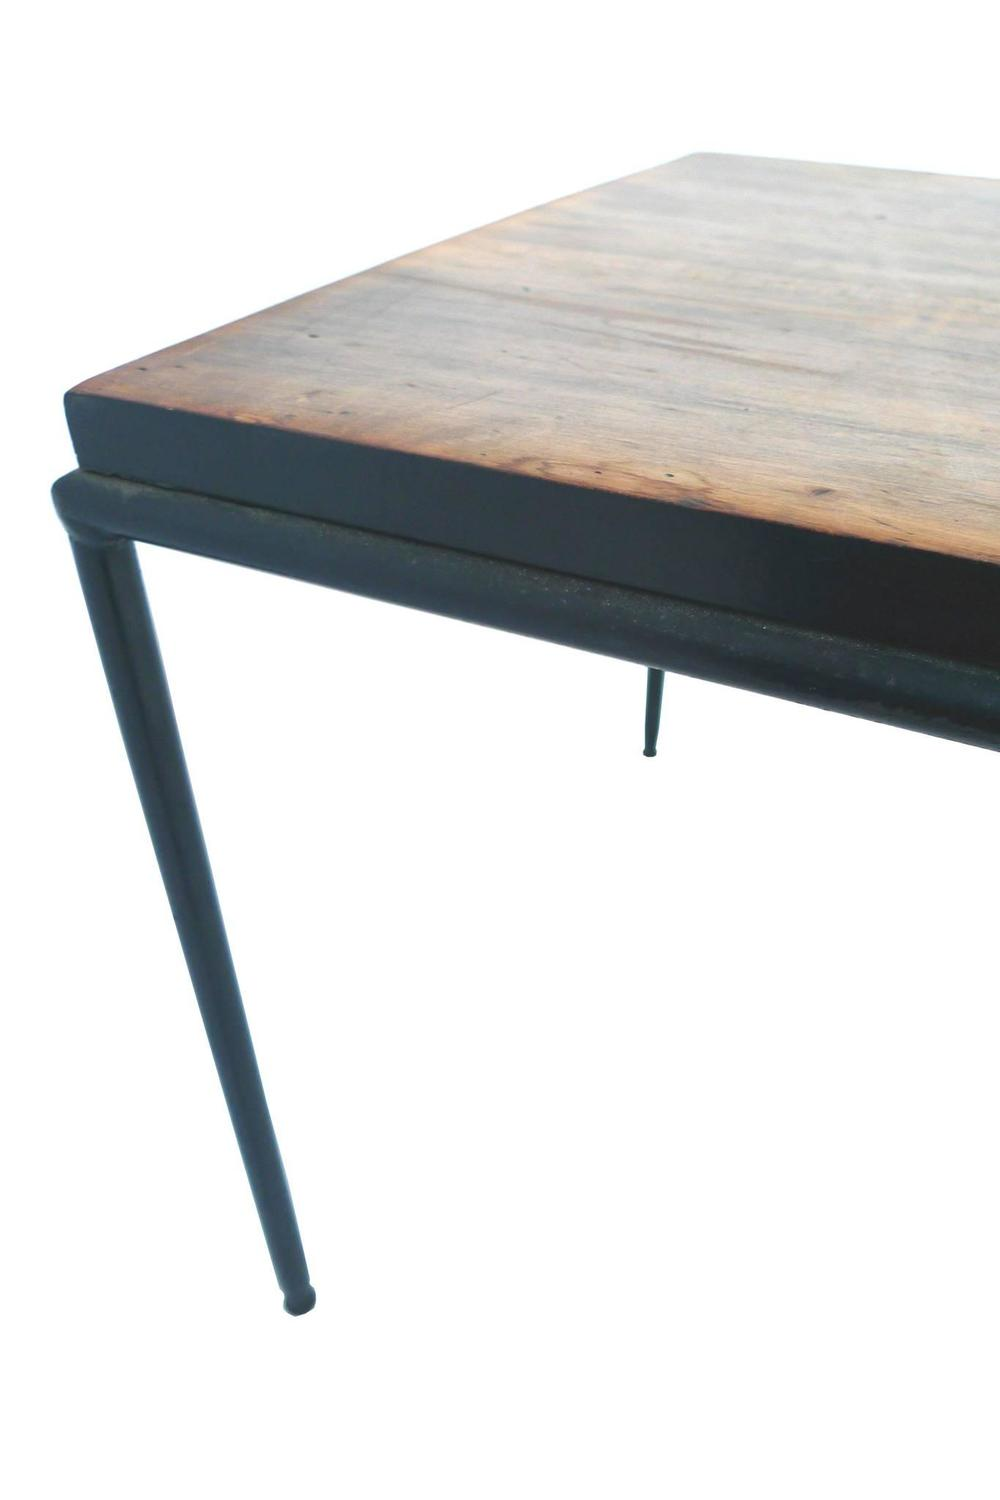 Paul mccobb wrought iron and teak coffee table at 1stdibs Wrought iron coffee tables